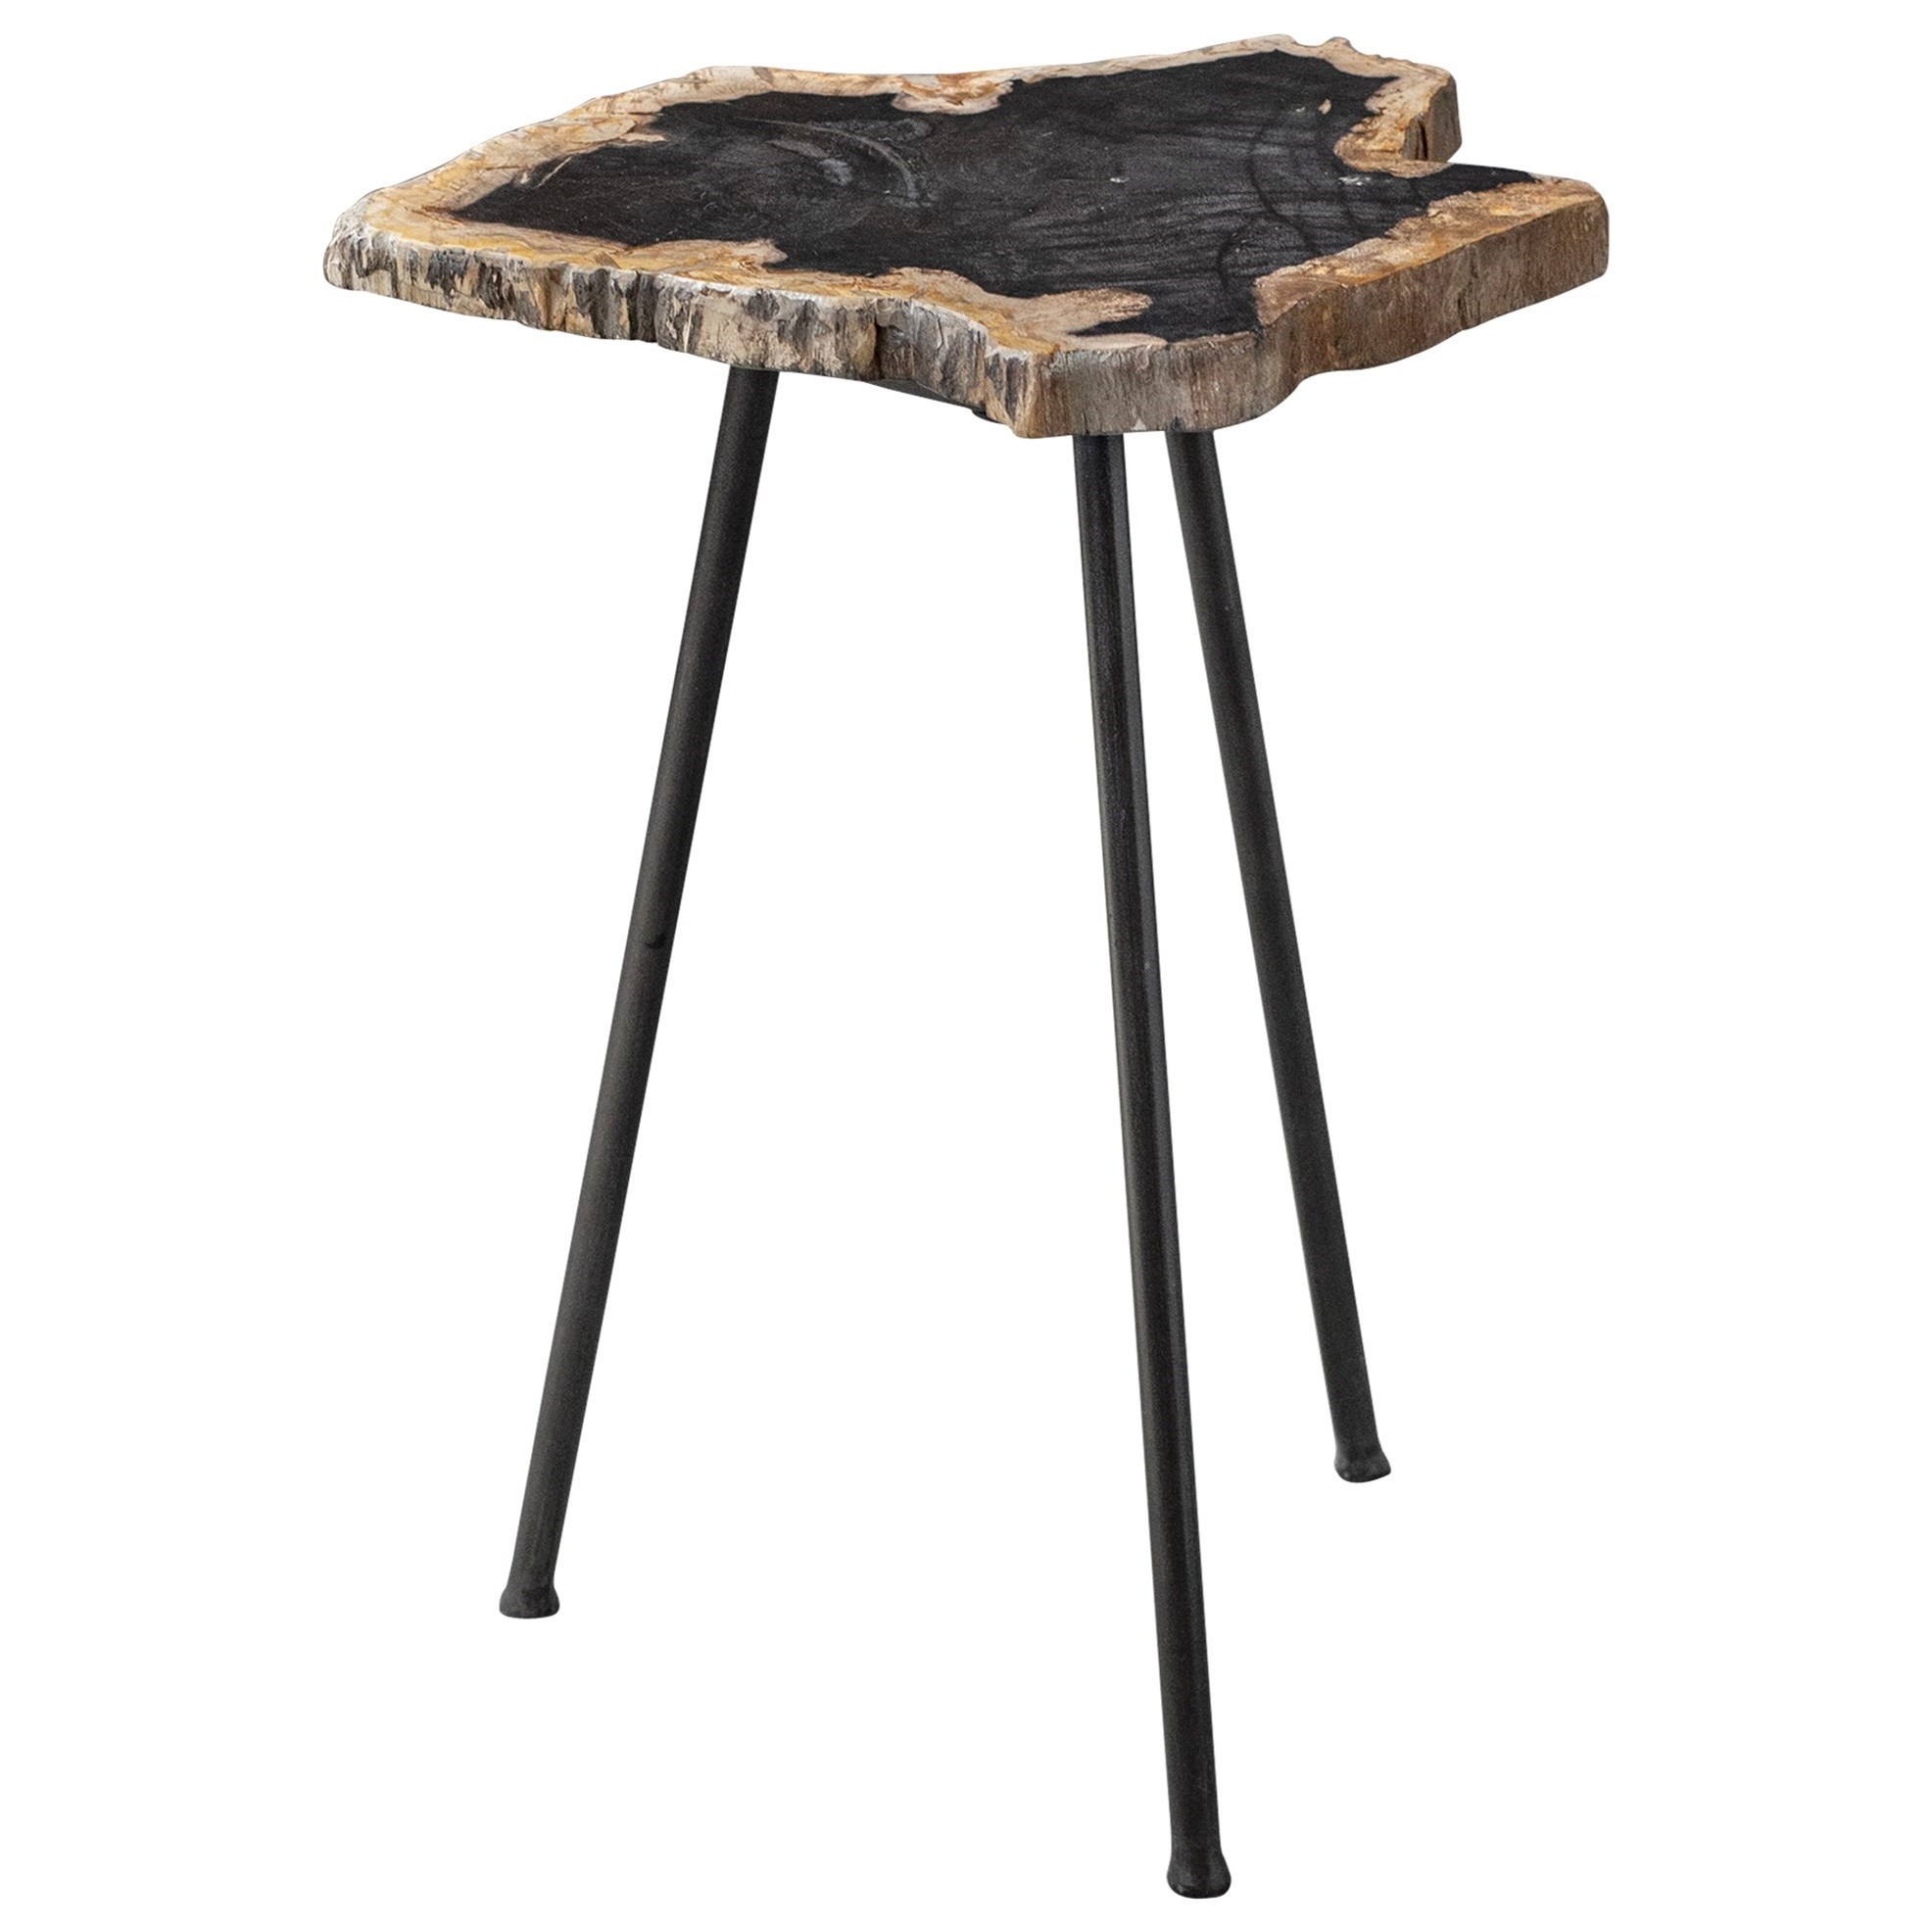 Accent Furniture - Occasional Tables Mircea Petrified Wood Accent Table by Uttermost at Reid's Furniture